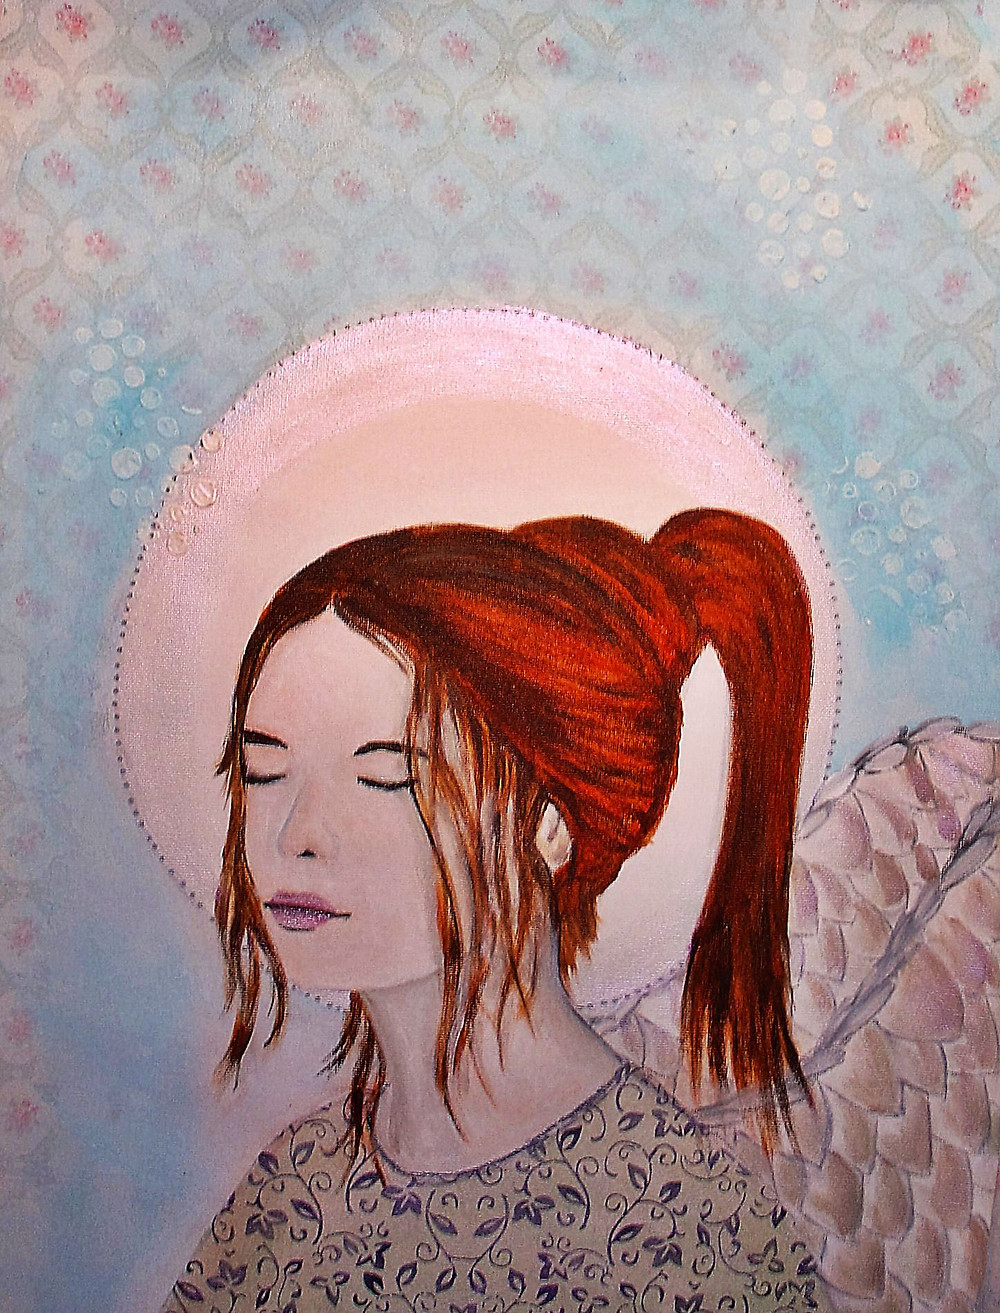 The Angels - Jane, a shy girl with eyes closed, copper hair, a halo and wings, pastel colours